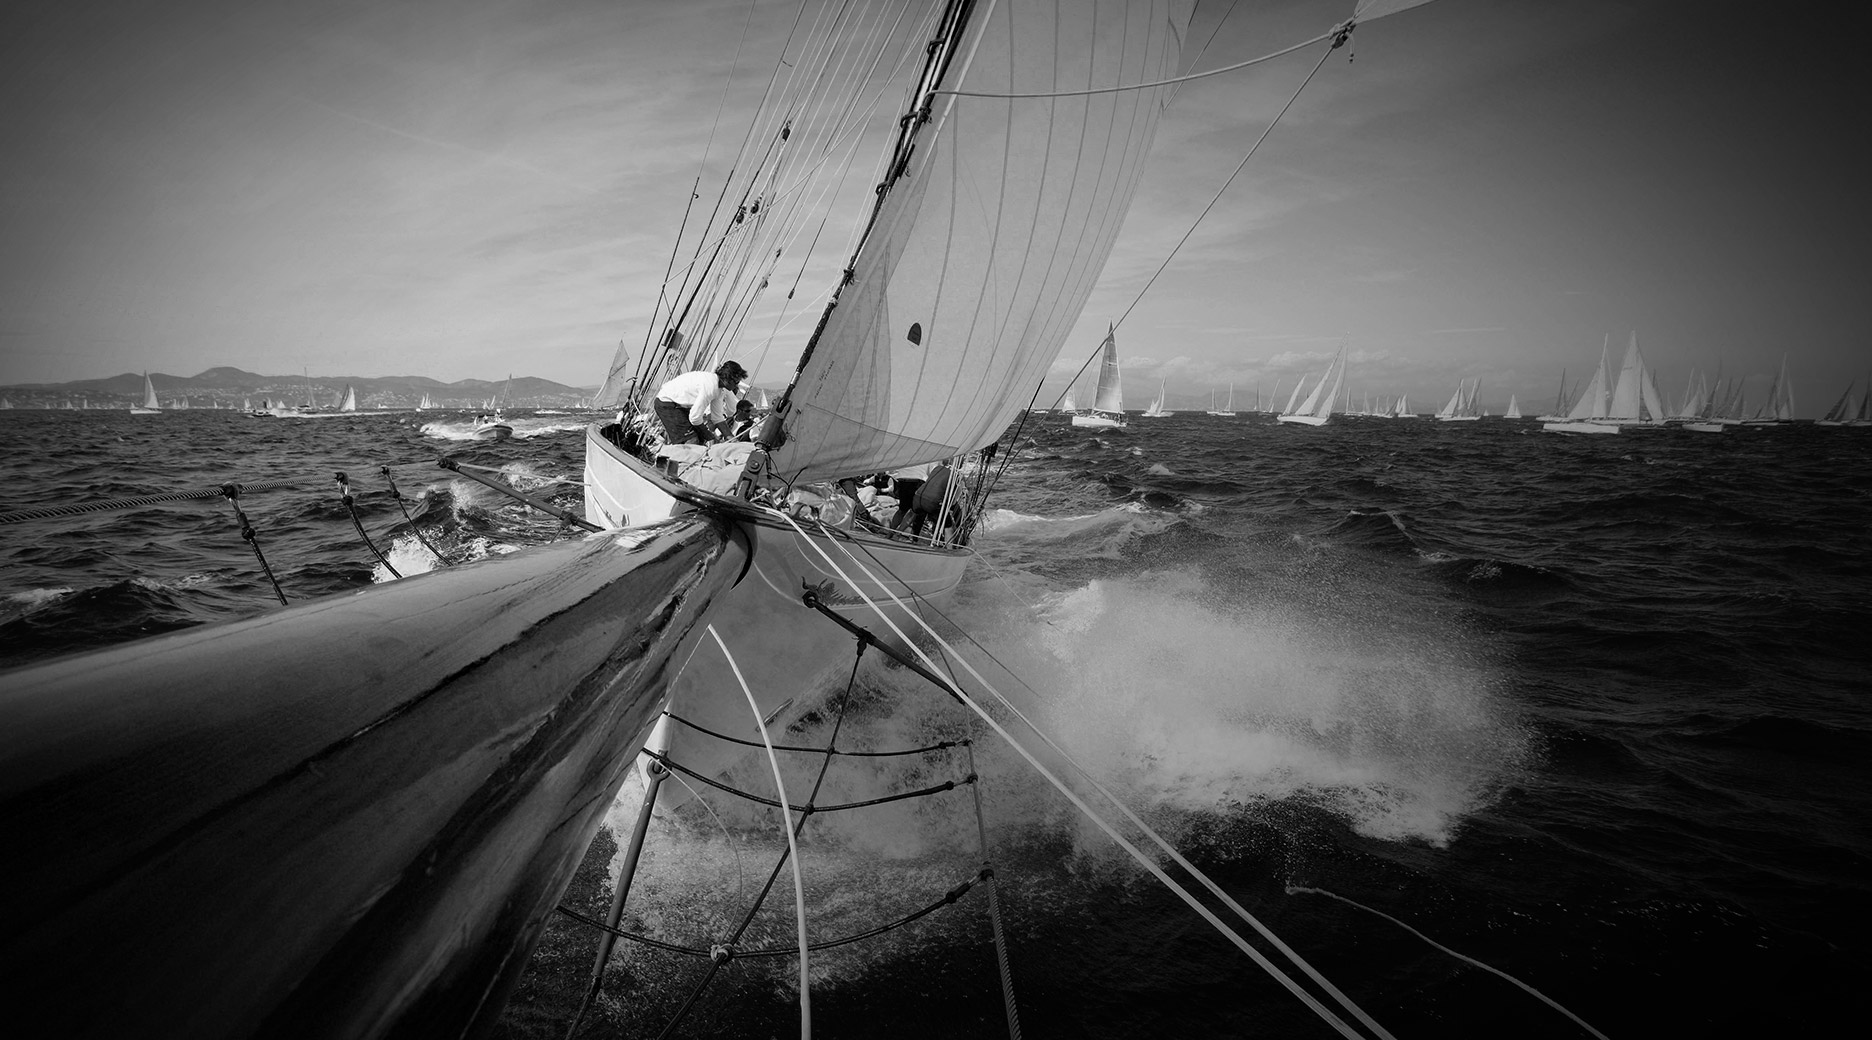 CLASSIC YACHT RACING AT ST. TROPEZ